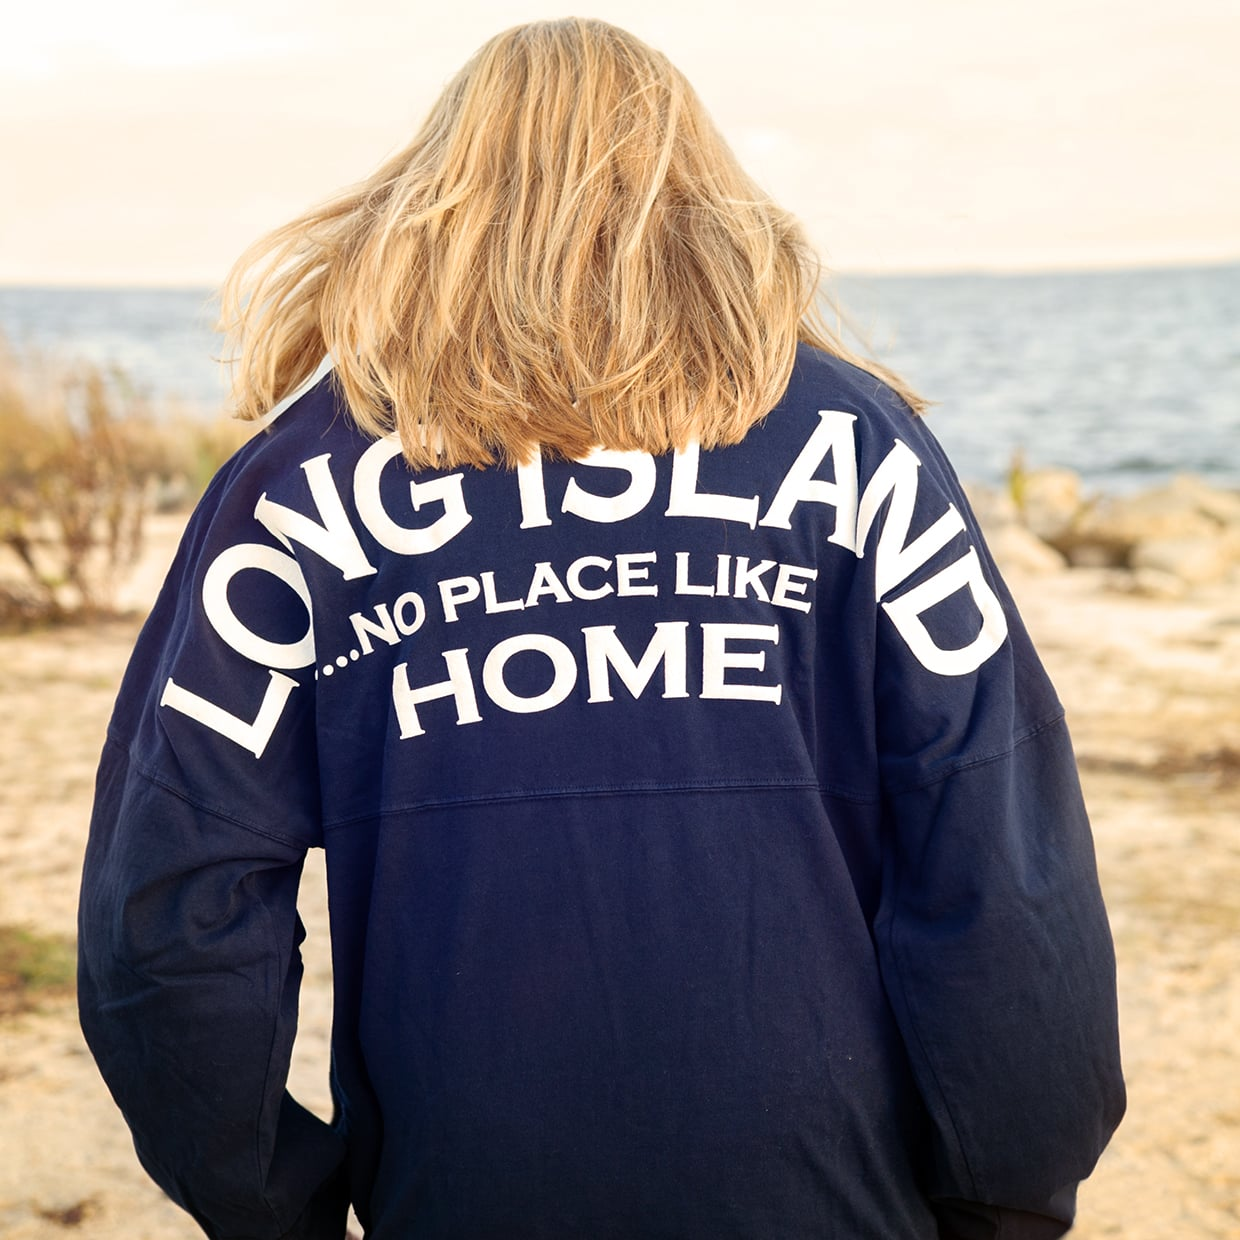 Long Island... No Place Like Home Jerseys on the beach overlooking the ocean